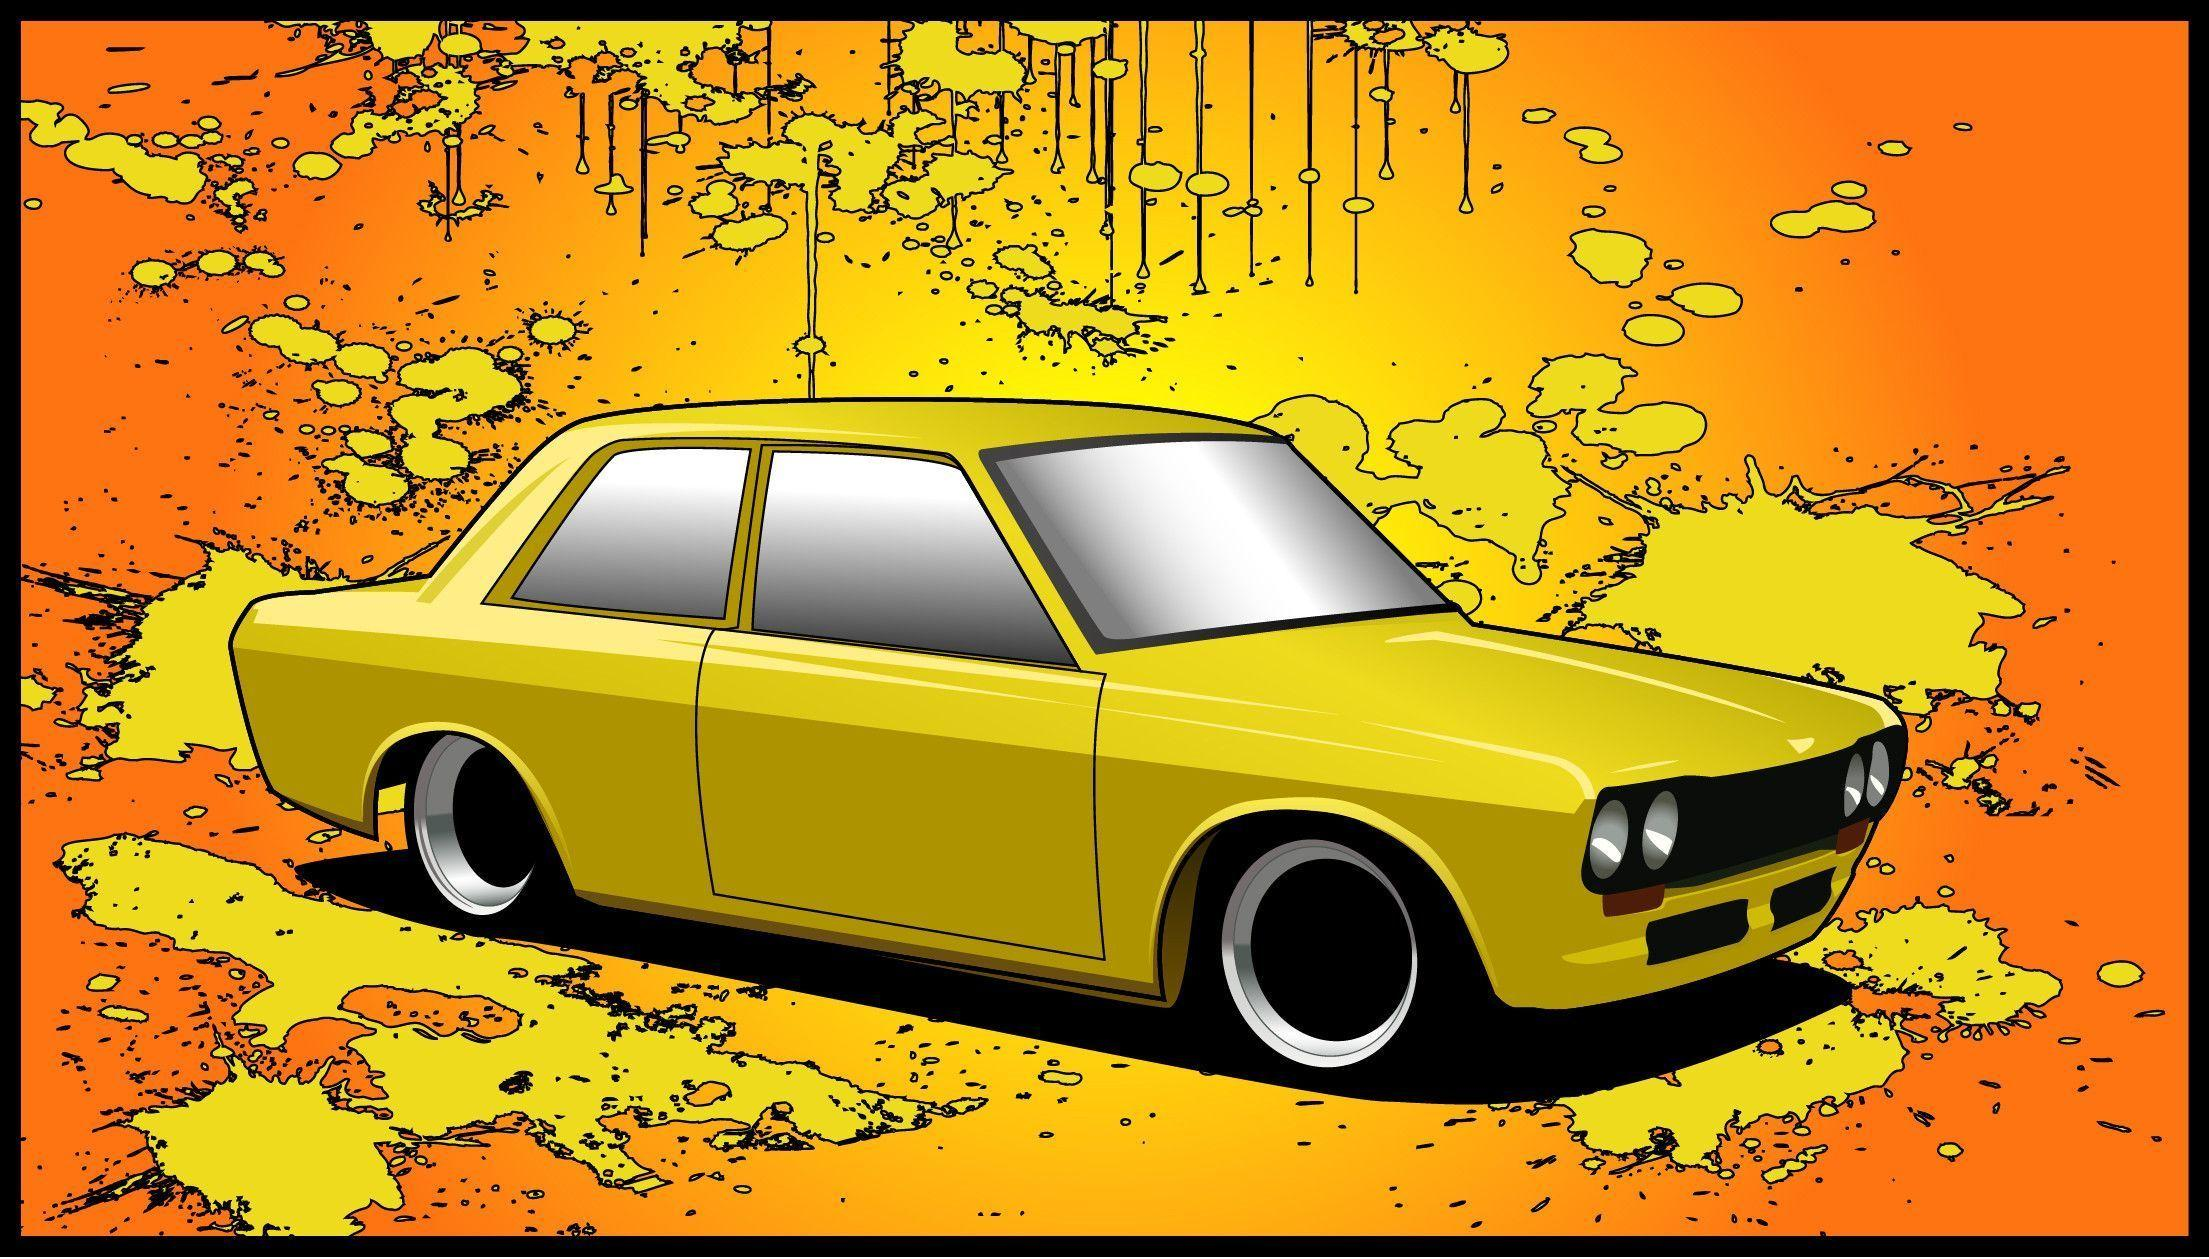 Datsun 510 Wallpapers 2209x1259